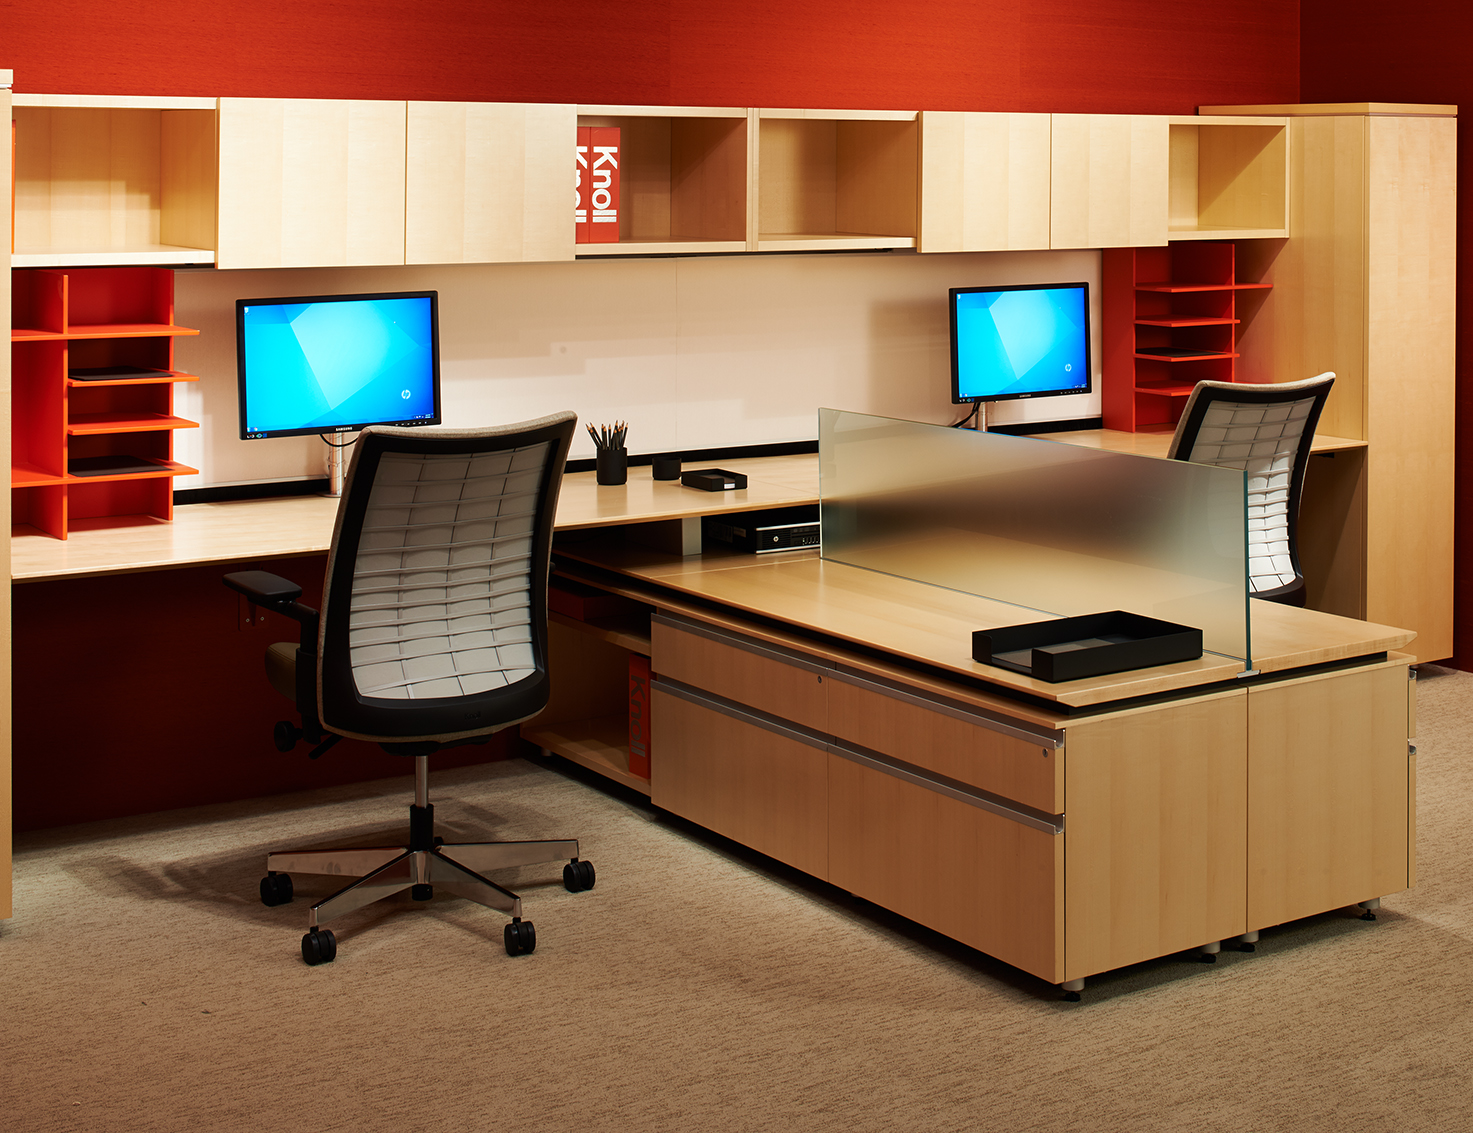 Knoll Autostrada Shared Private Office